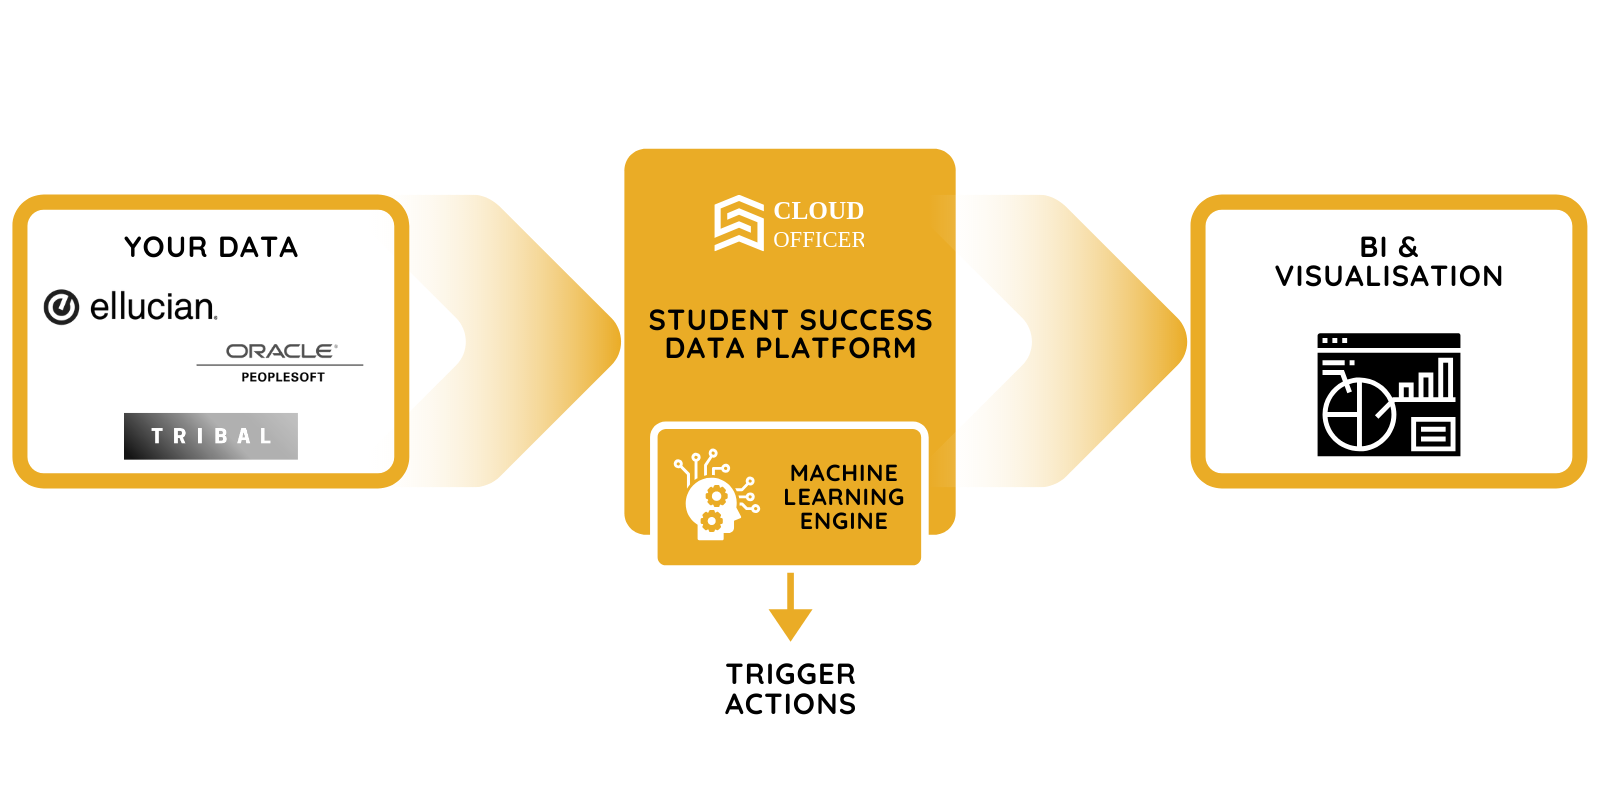 diagram of the cloud officer student success data platform for student retention